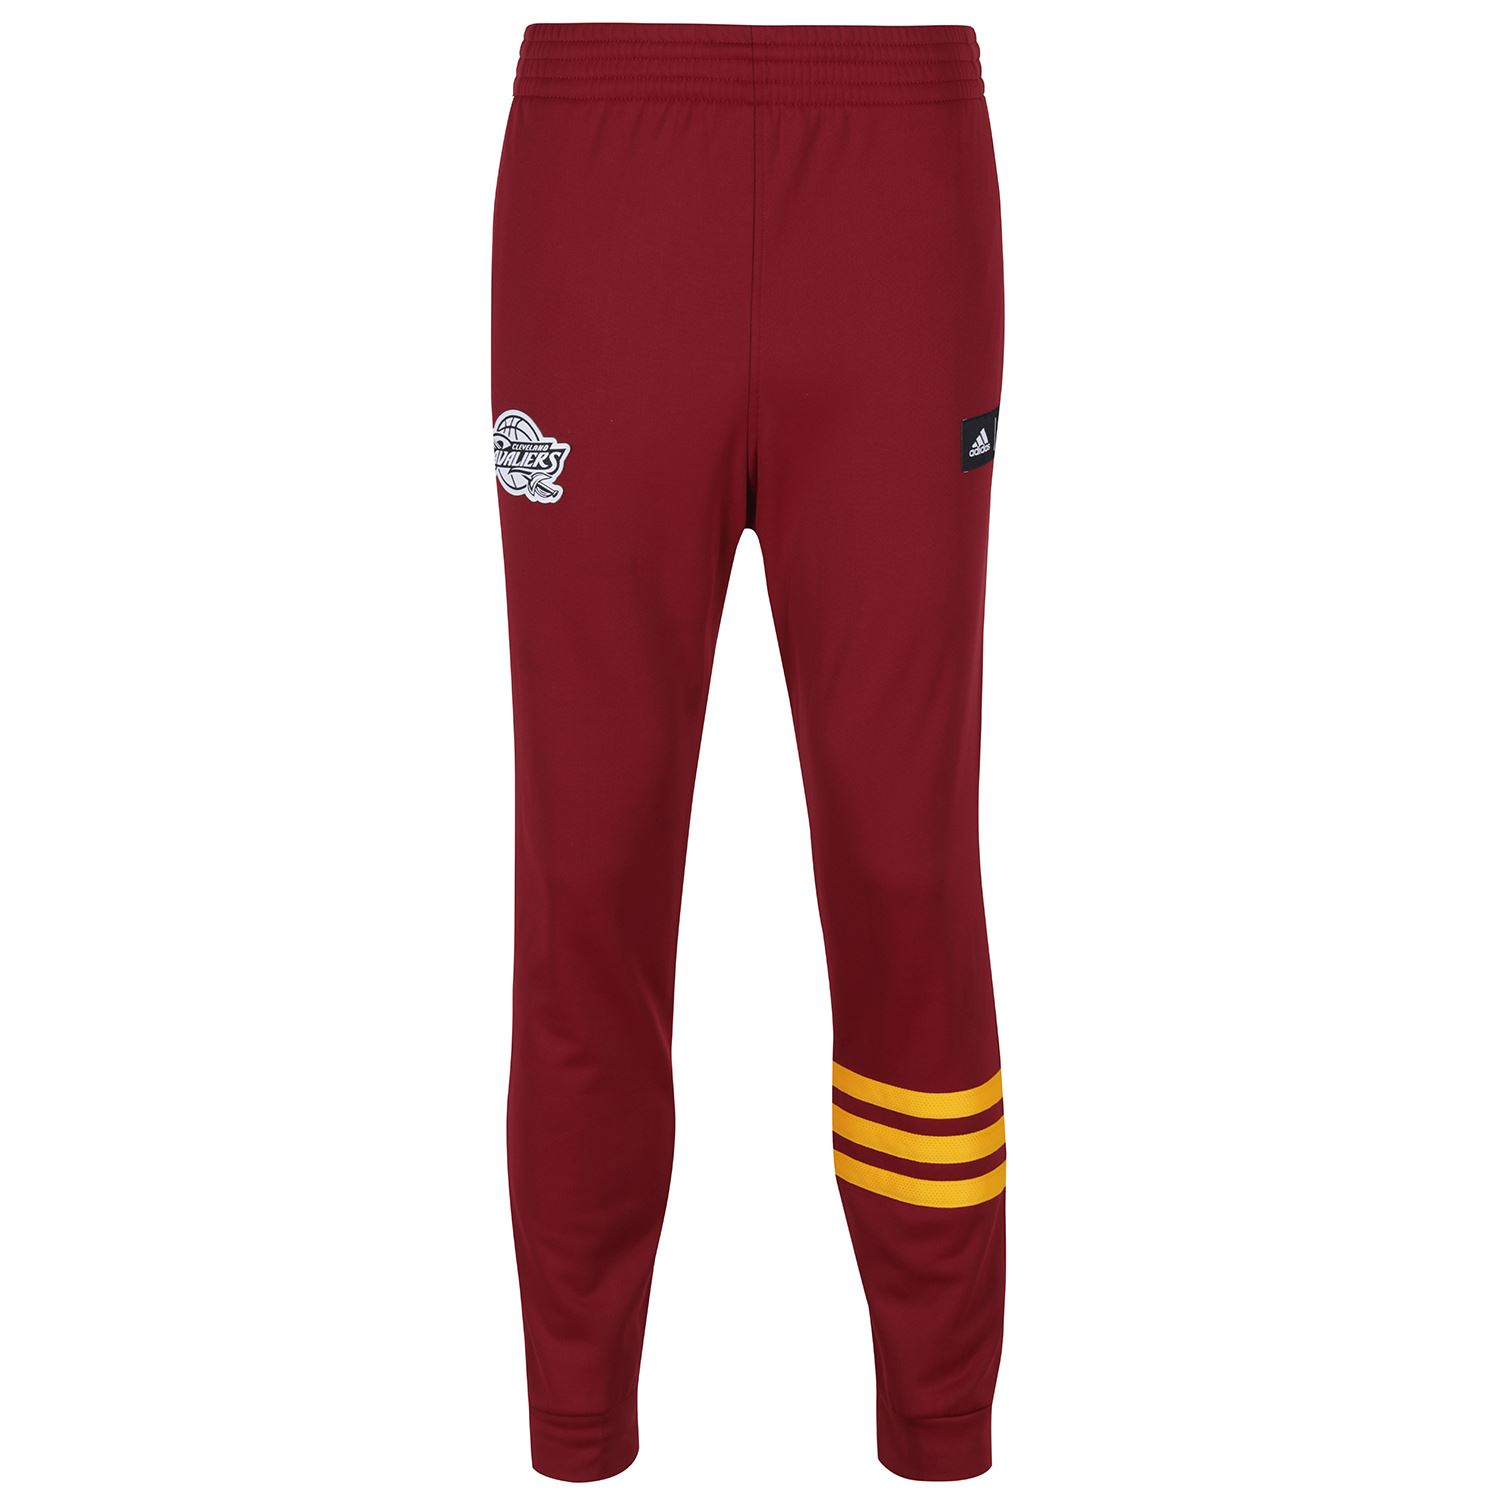 Shop men's warm-up pants from DICK'S Sporting Goods. Browse all men's sweatpants and warm-up pants from Nike, Under Armour & more top-rated brands in a range of colors.